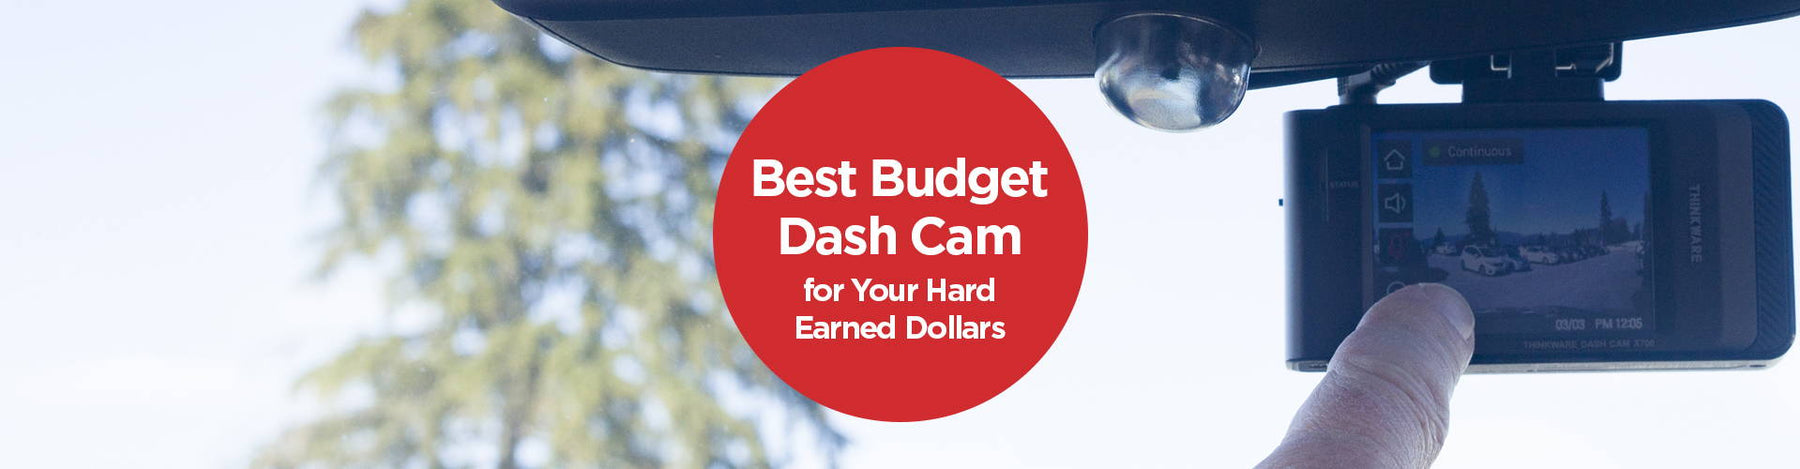 Best Budget Dash Cams for Your Hard-Earned Dollars